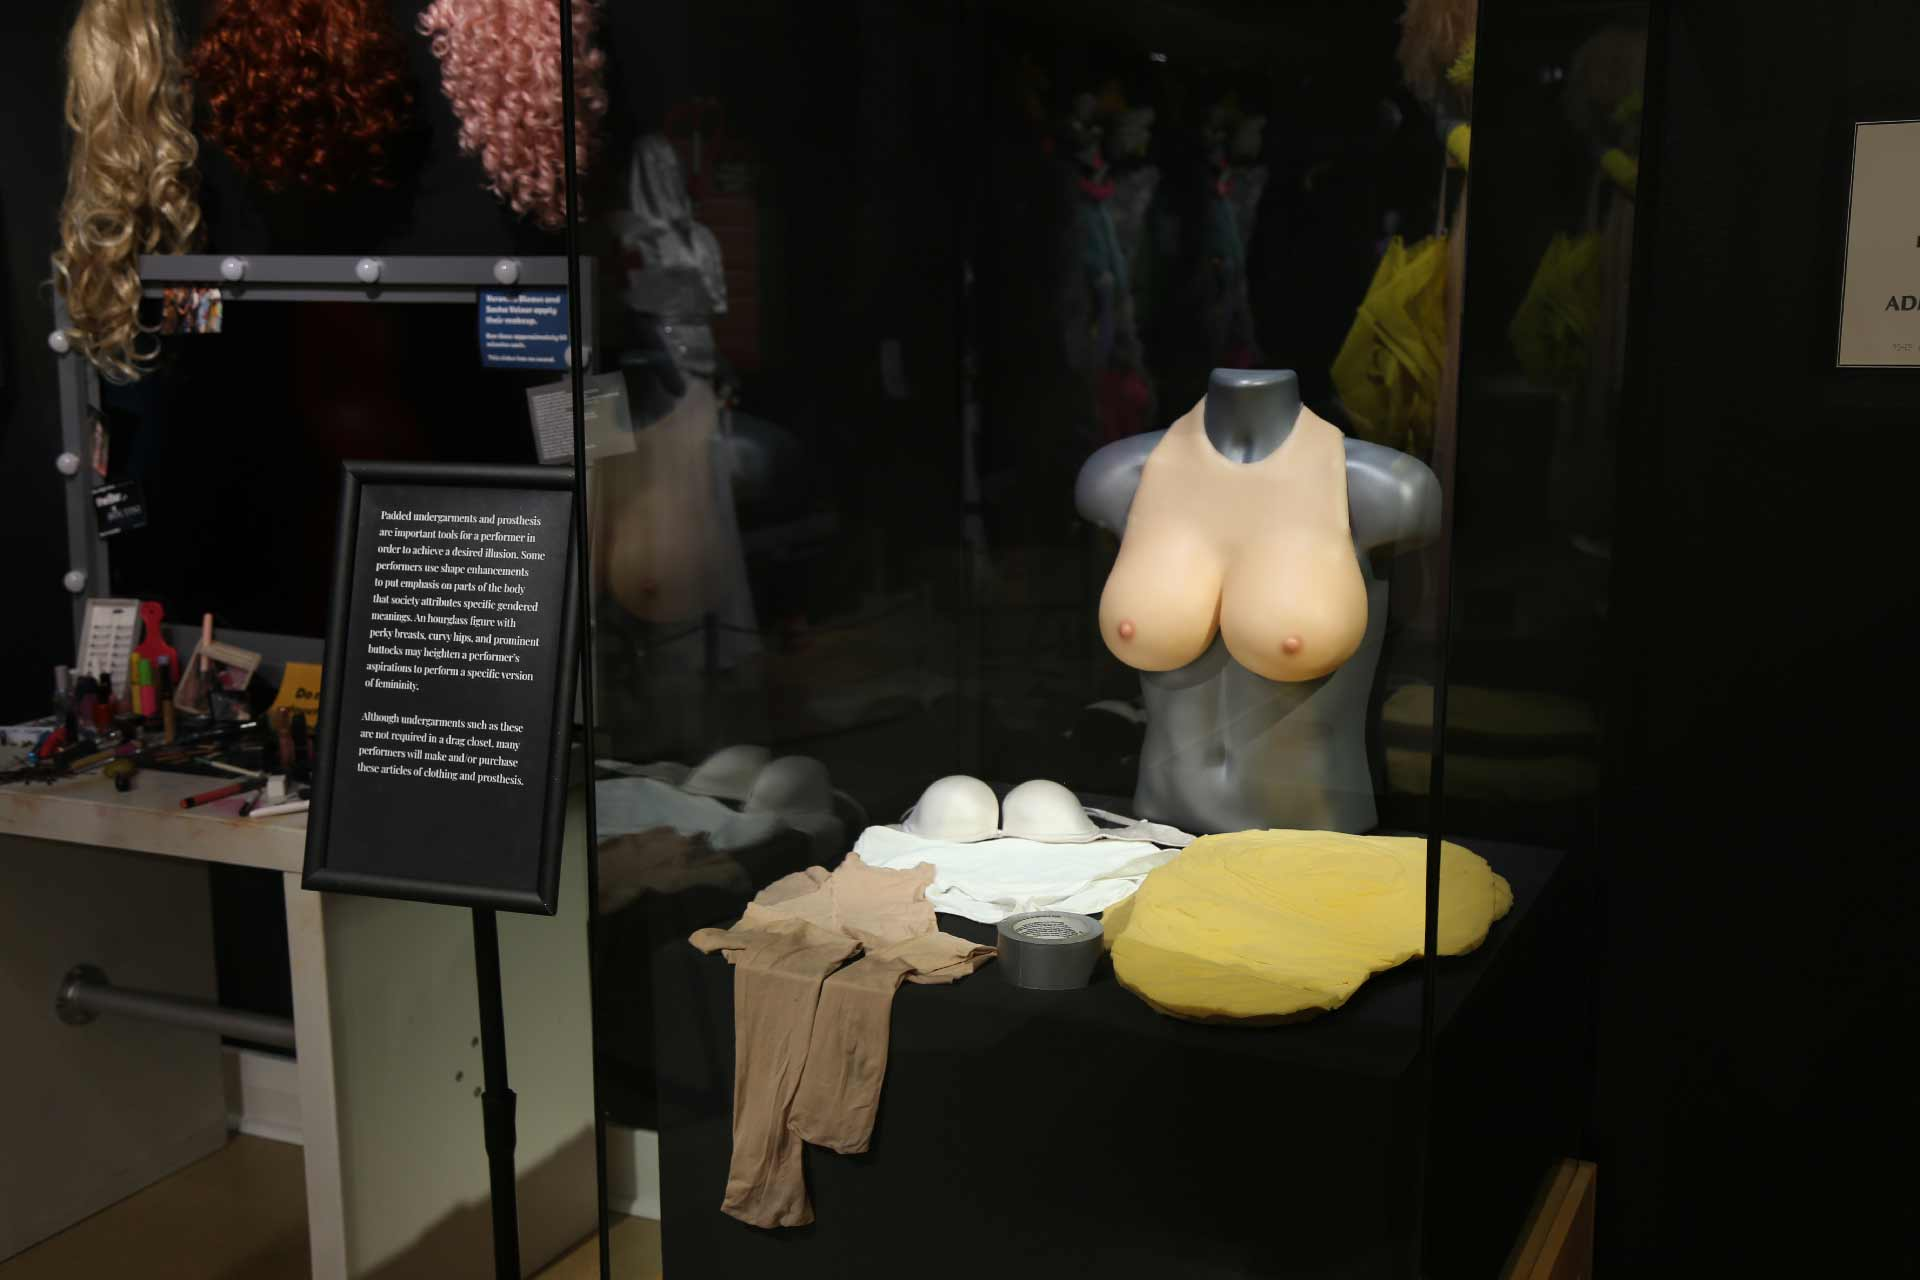 display case with various prosethetic materials and shapewear